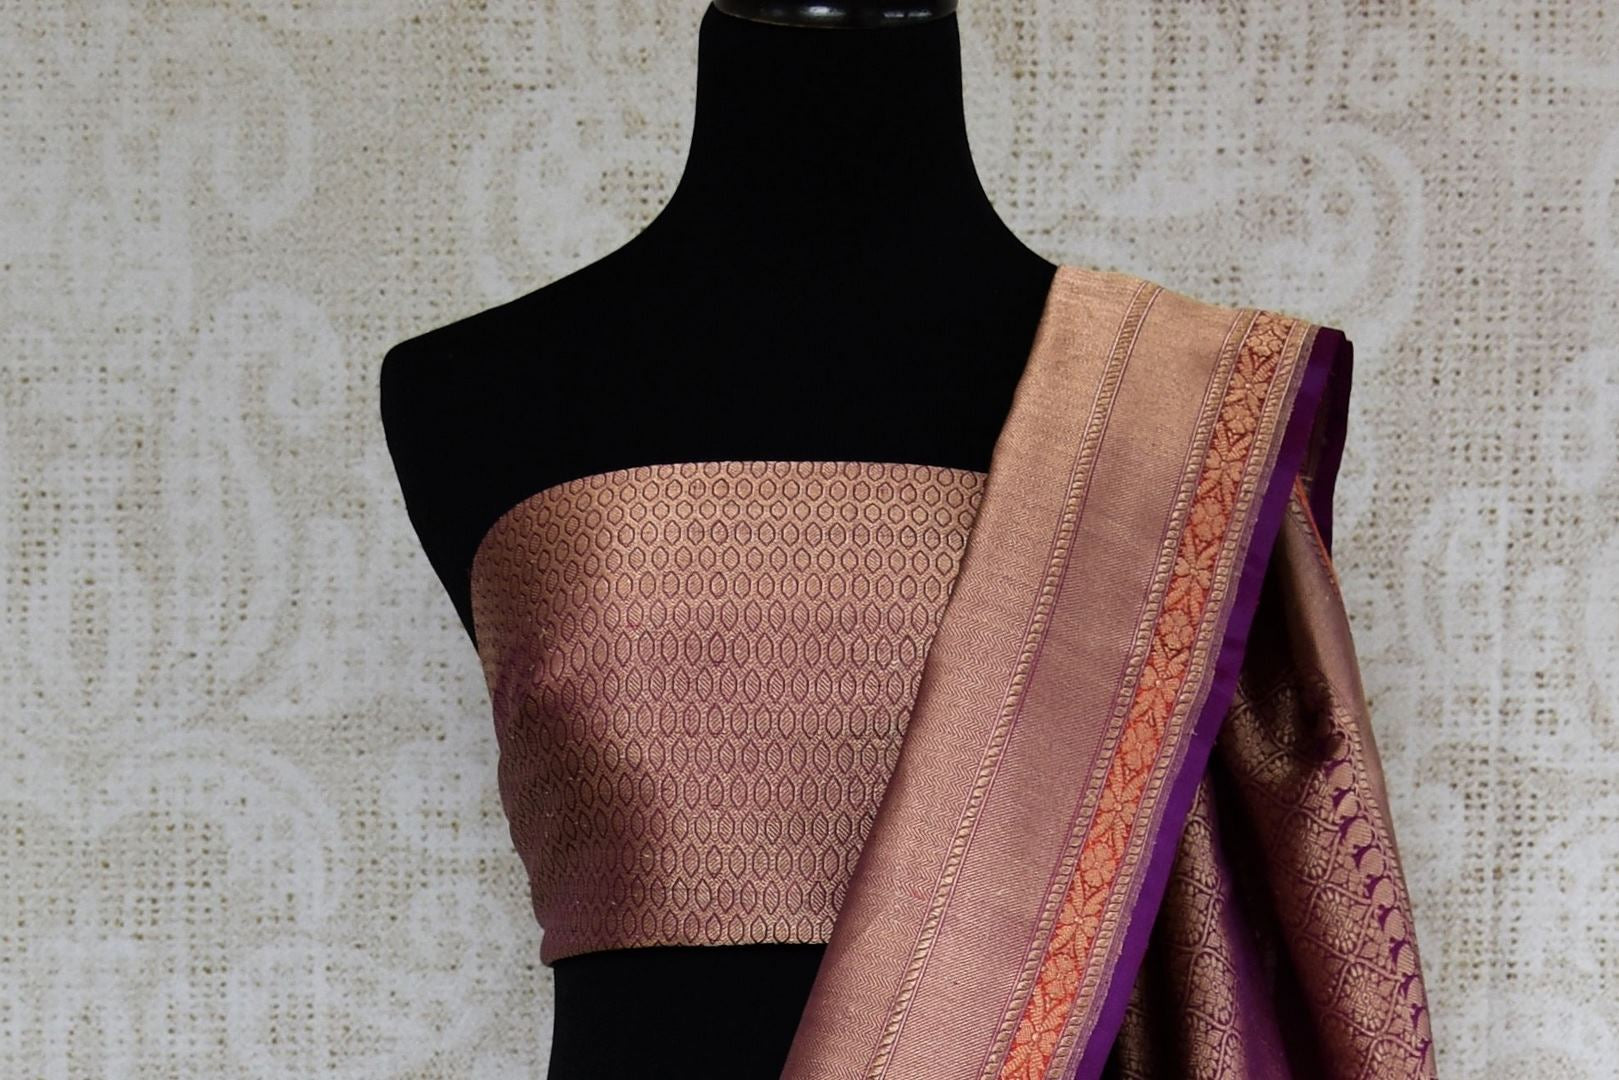 Buy online traditional orange Banarasi silk sari with buta online in USA and purple zari border. The saree is a beautiful drape for an ethnic Indian look at weddings and special occasions. Find more such exquisite Indian silk sarees, handloom sarees in USA at Pure Elegance Indian fashion store. Shop now.-blouse pallu